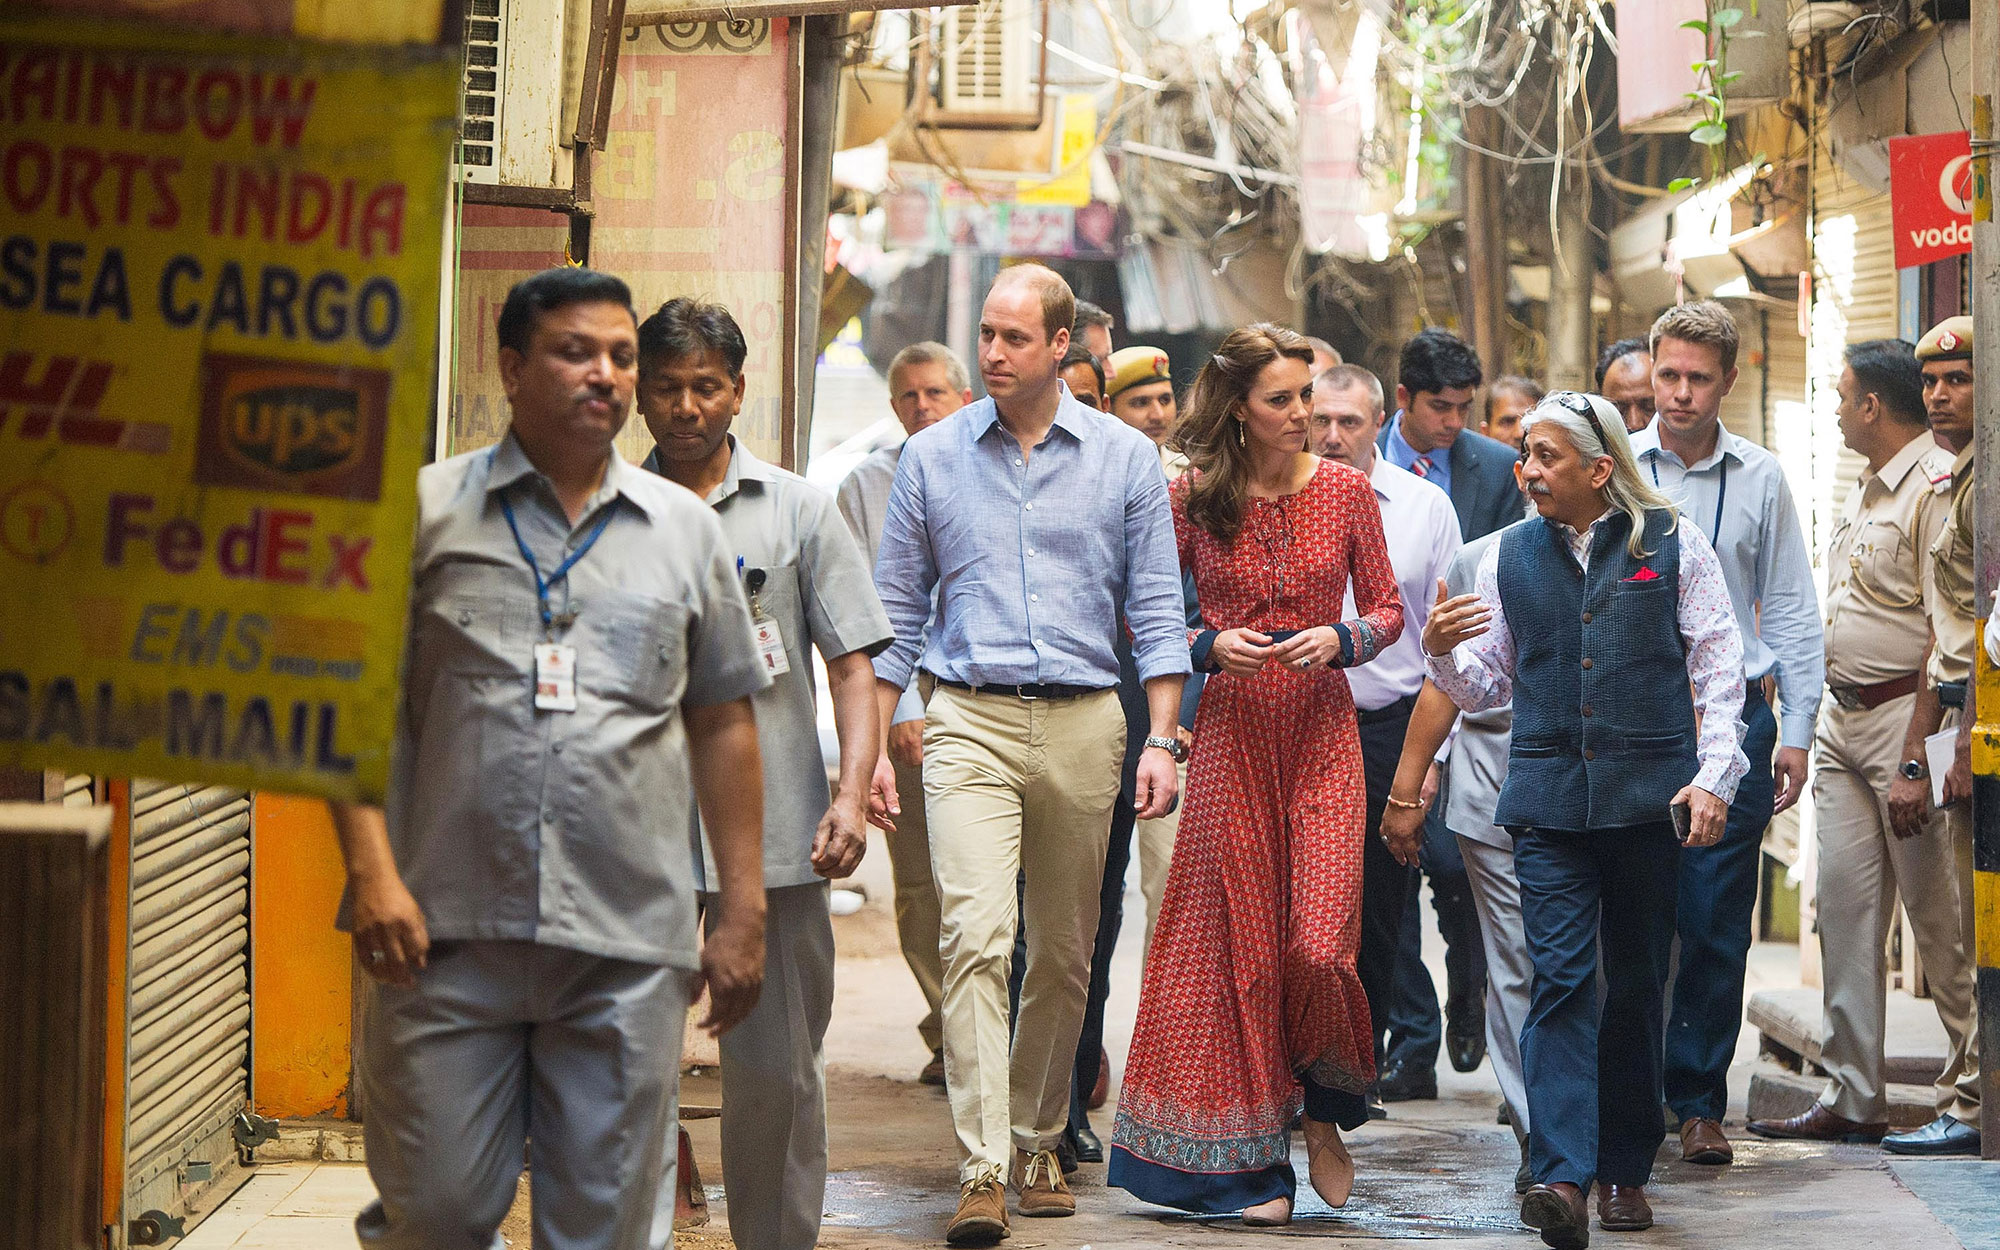 Prince William and Kate Middleton Embark on their Royal Tour of India and Bhutan: Visiting a Children's Center